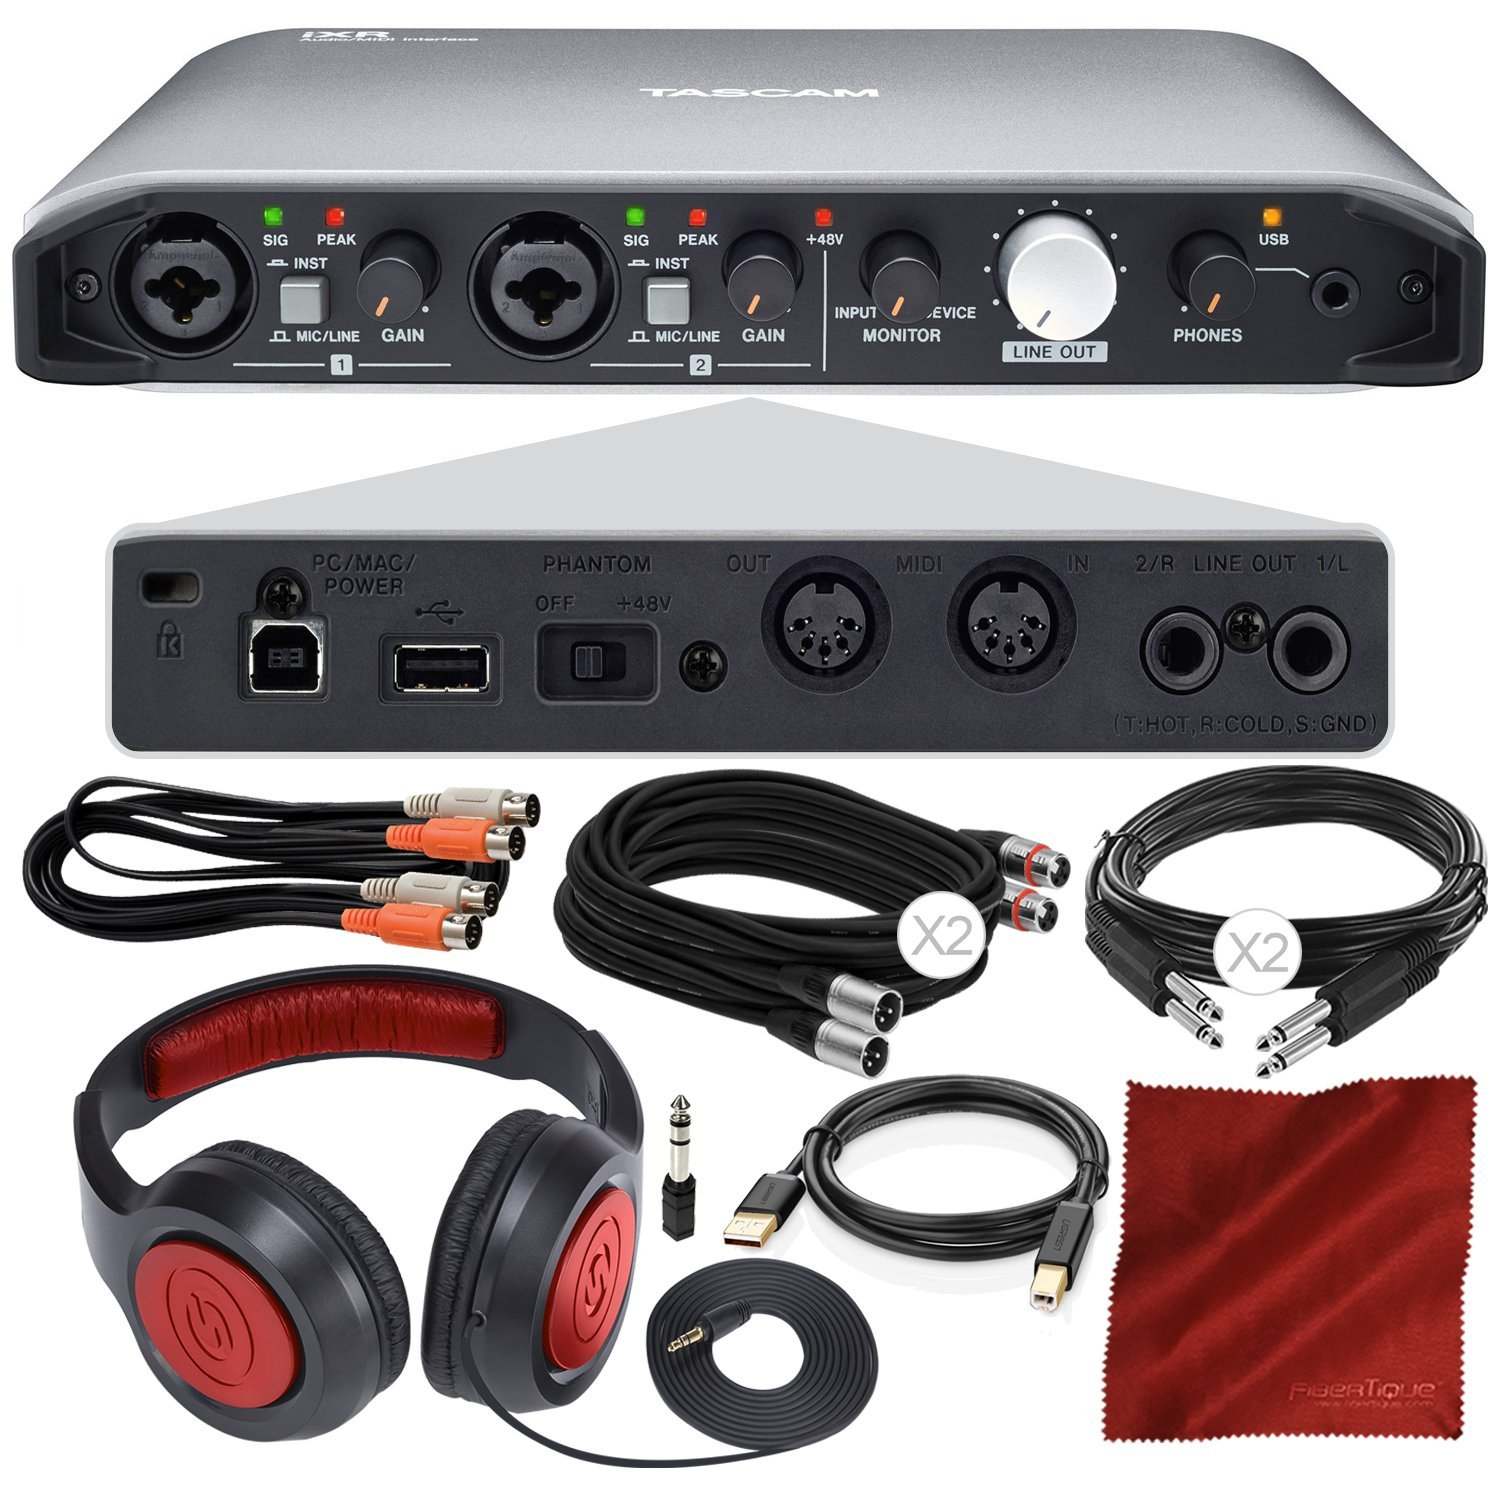 Tascam iXR USB Audio Recording Interface for iPad MacOS And Windows with Samson Stereo Headphones, Dual MIDI Cable, Deluxe Bundle